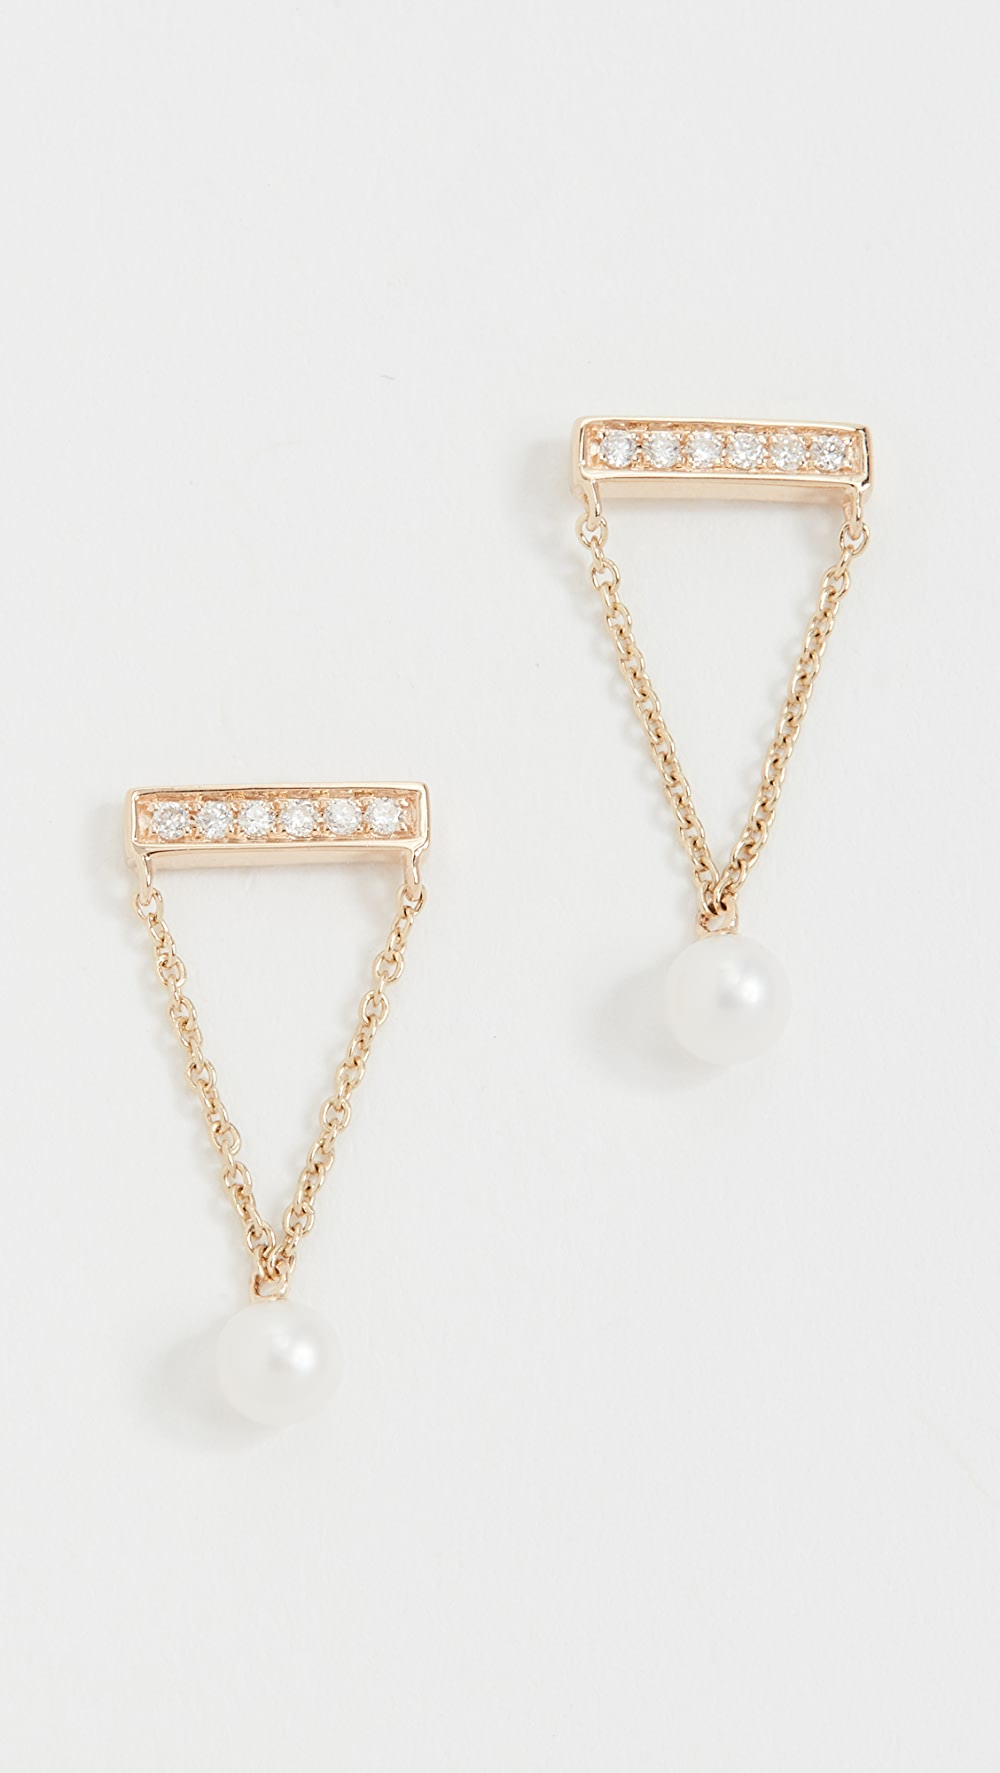 Careful Sydney Evan - 14k Gold Pearl Drop Diamond Bar Studs Bringing More Convenience To The People In Their Daily Life